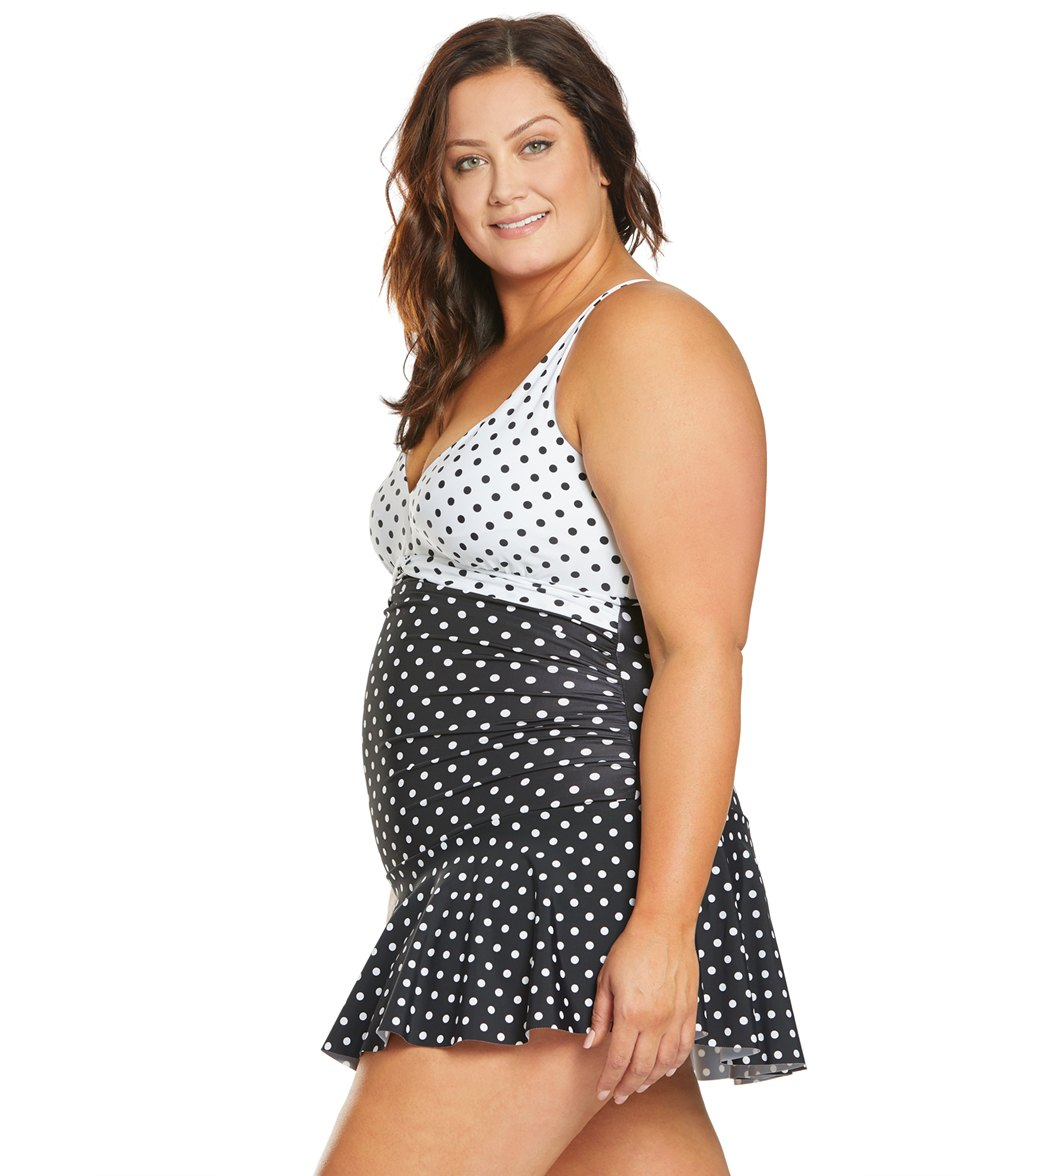 a46c6b30fb Ralph Lauren Chaps Plus Size Slimming Fit Mixed Dot Halter Swim Dress